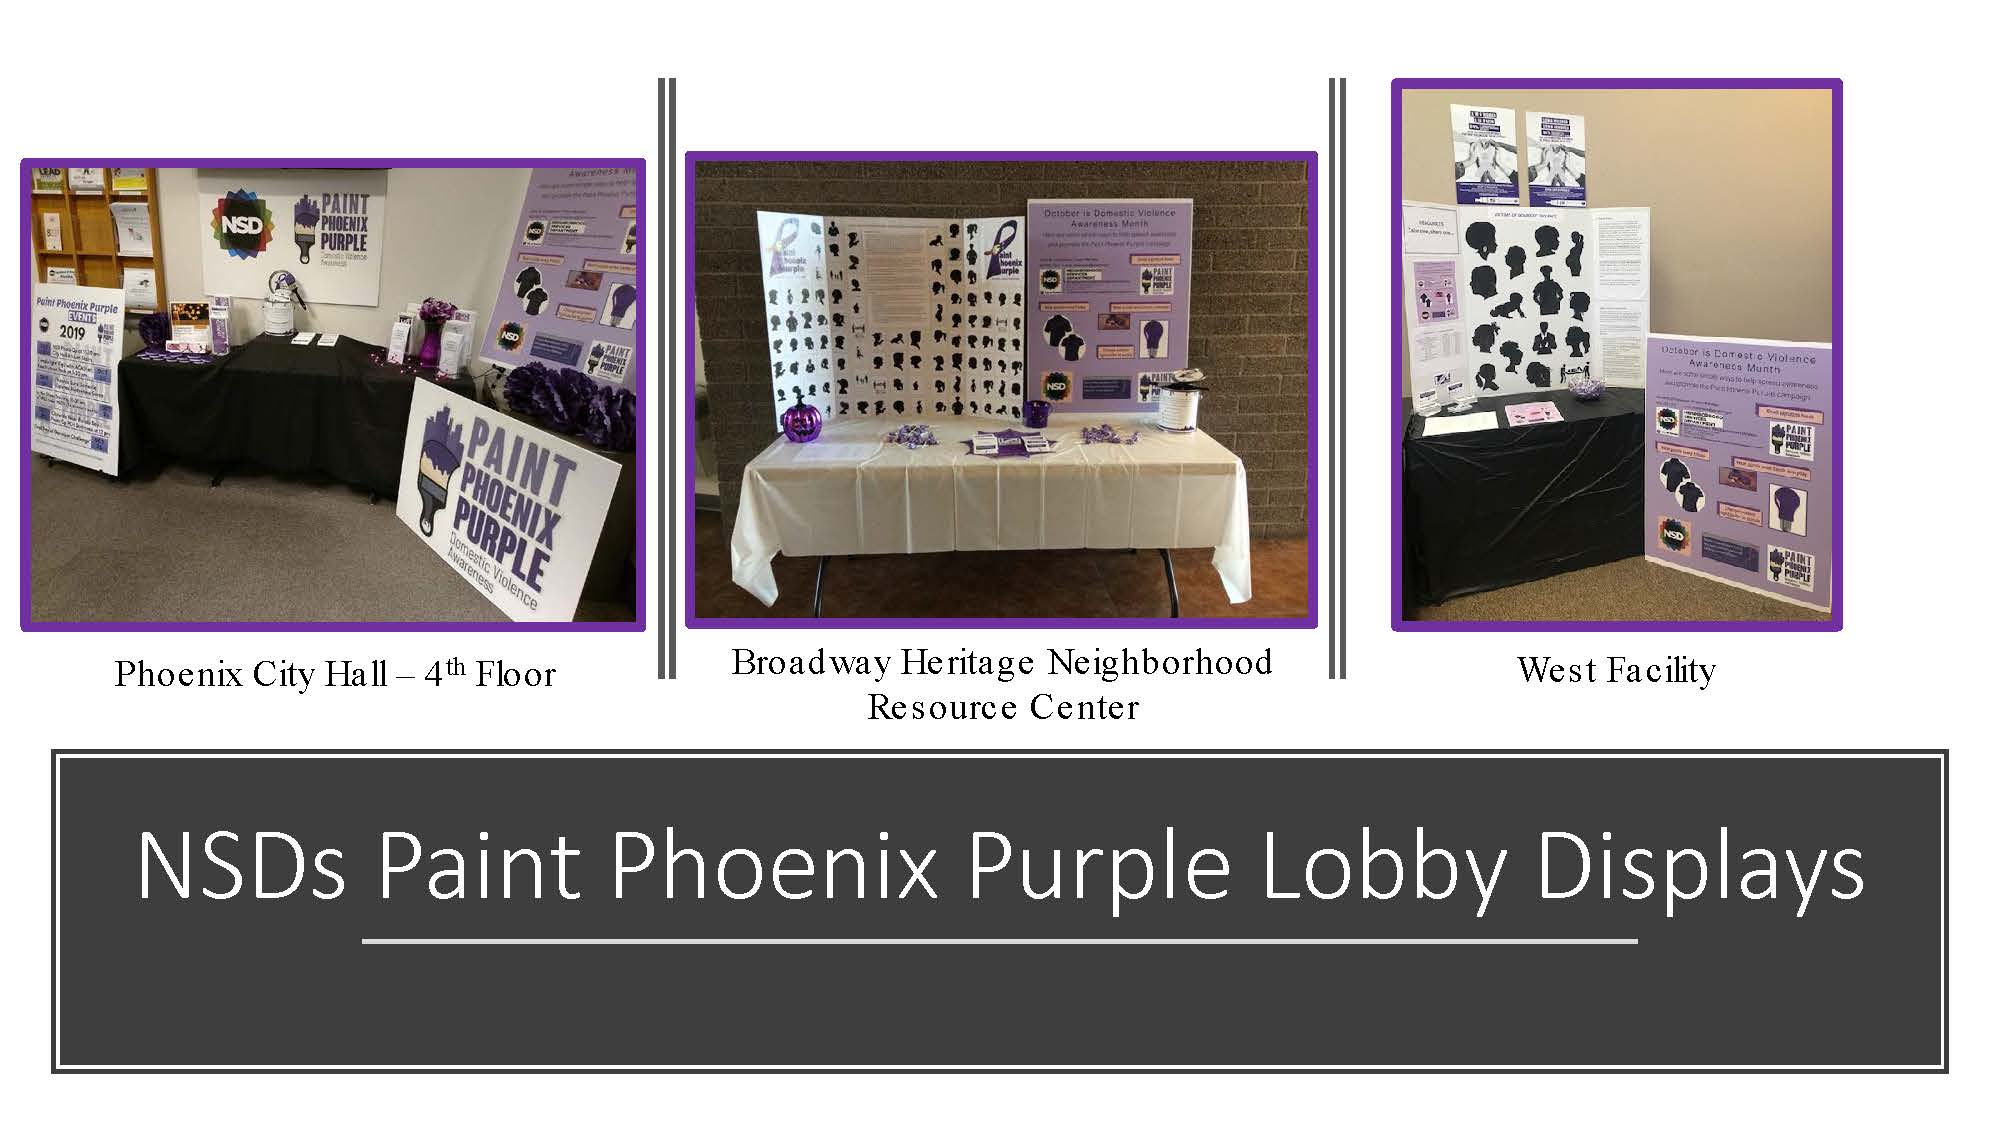 #PaintPHXPurple